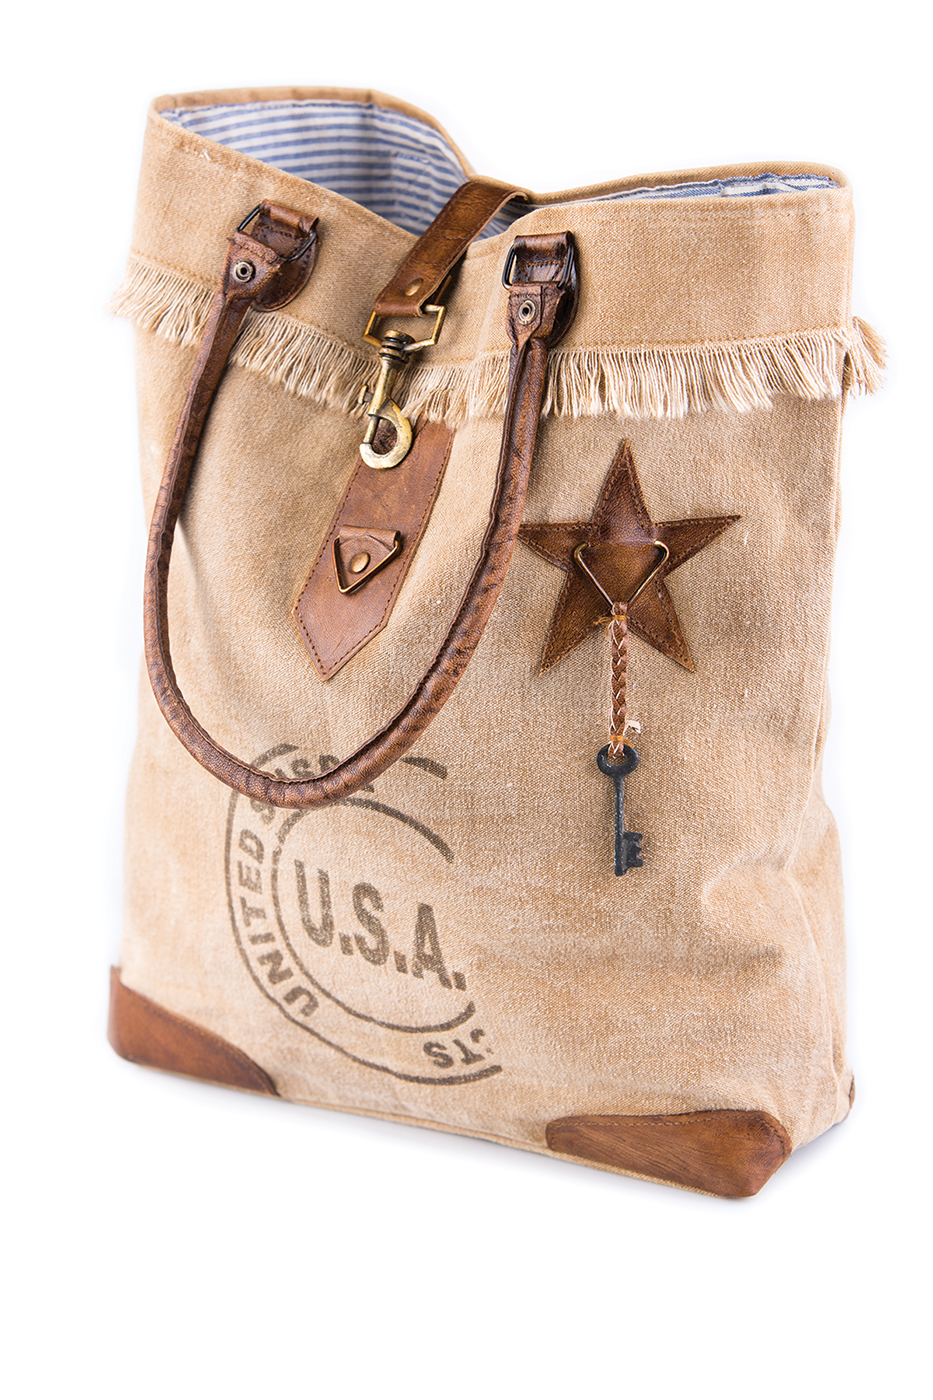 Usa Stamped Canvas Tote By Mona B